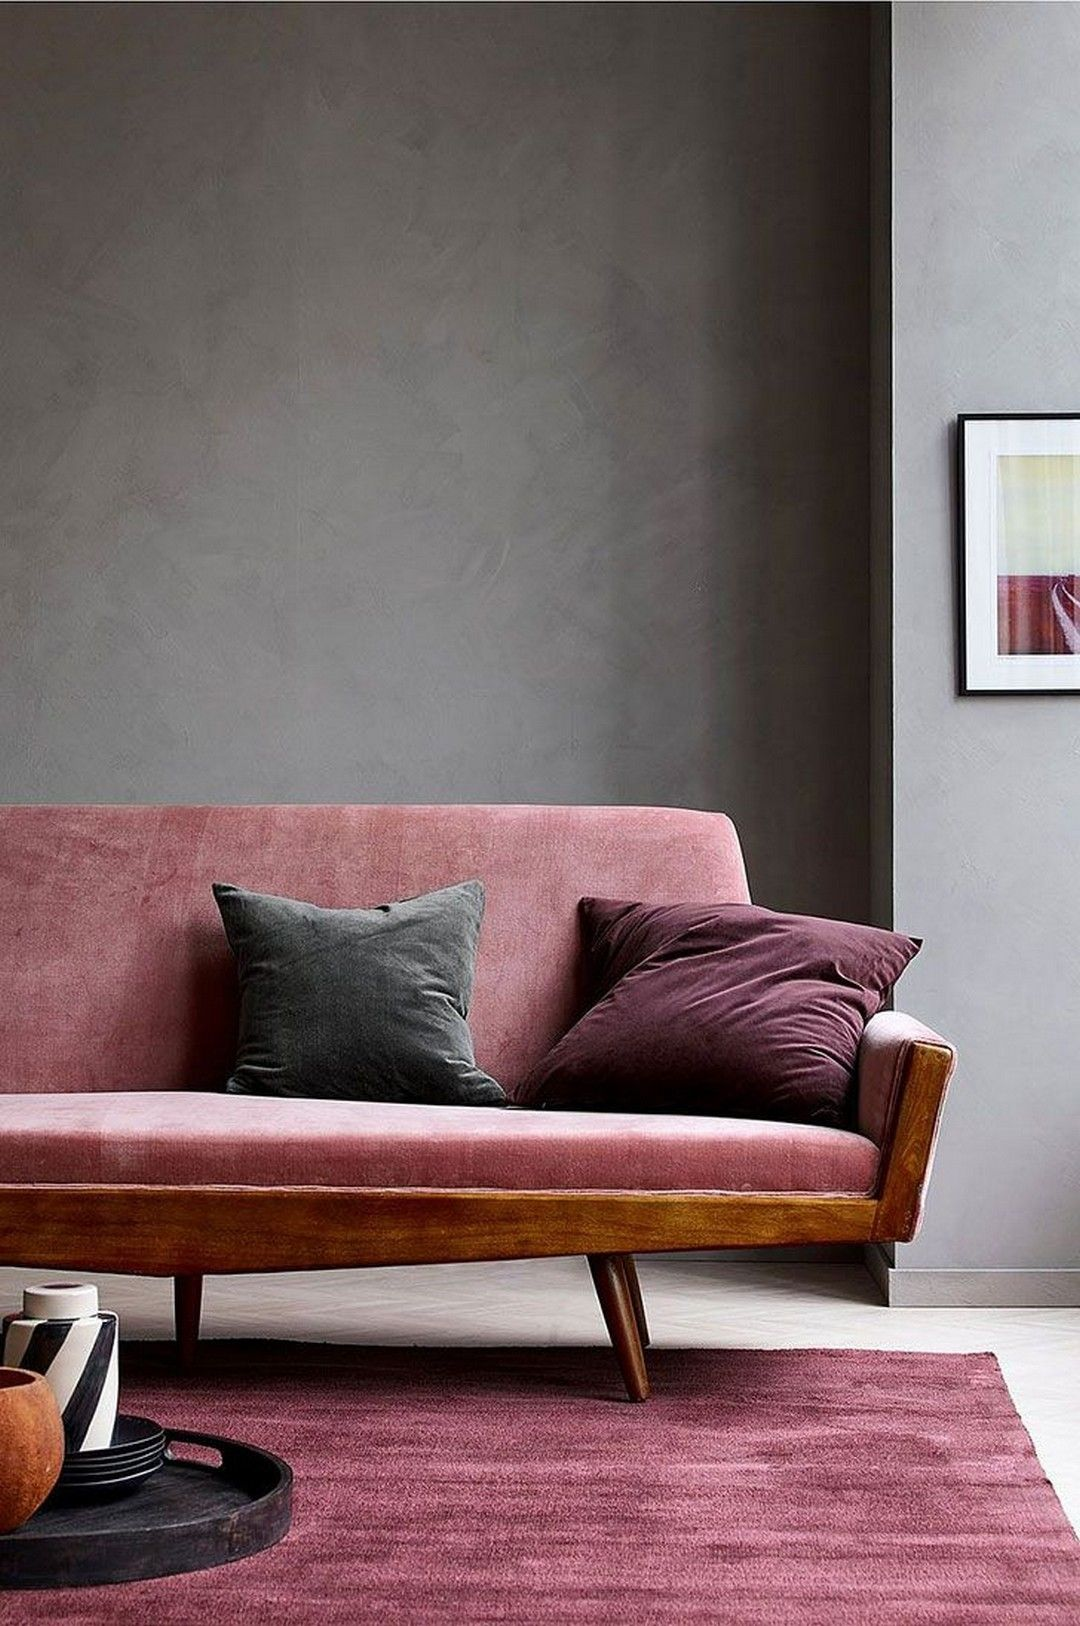 10+ MINIMUM INTERIOR DESIGN TO ADD UNIQUE CHARACTER TO YOUR SPACE is part of Pink sofa - Achievable for virtually any budget, the Scandinavian style has a timeless high quality that's properly price contemplating bringing into your individual decor, particularly if it's the case that you simply don't want to want to vary this up typically  Please… Continue Reading →